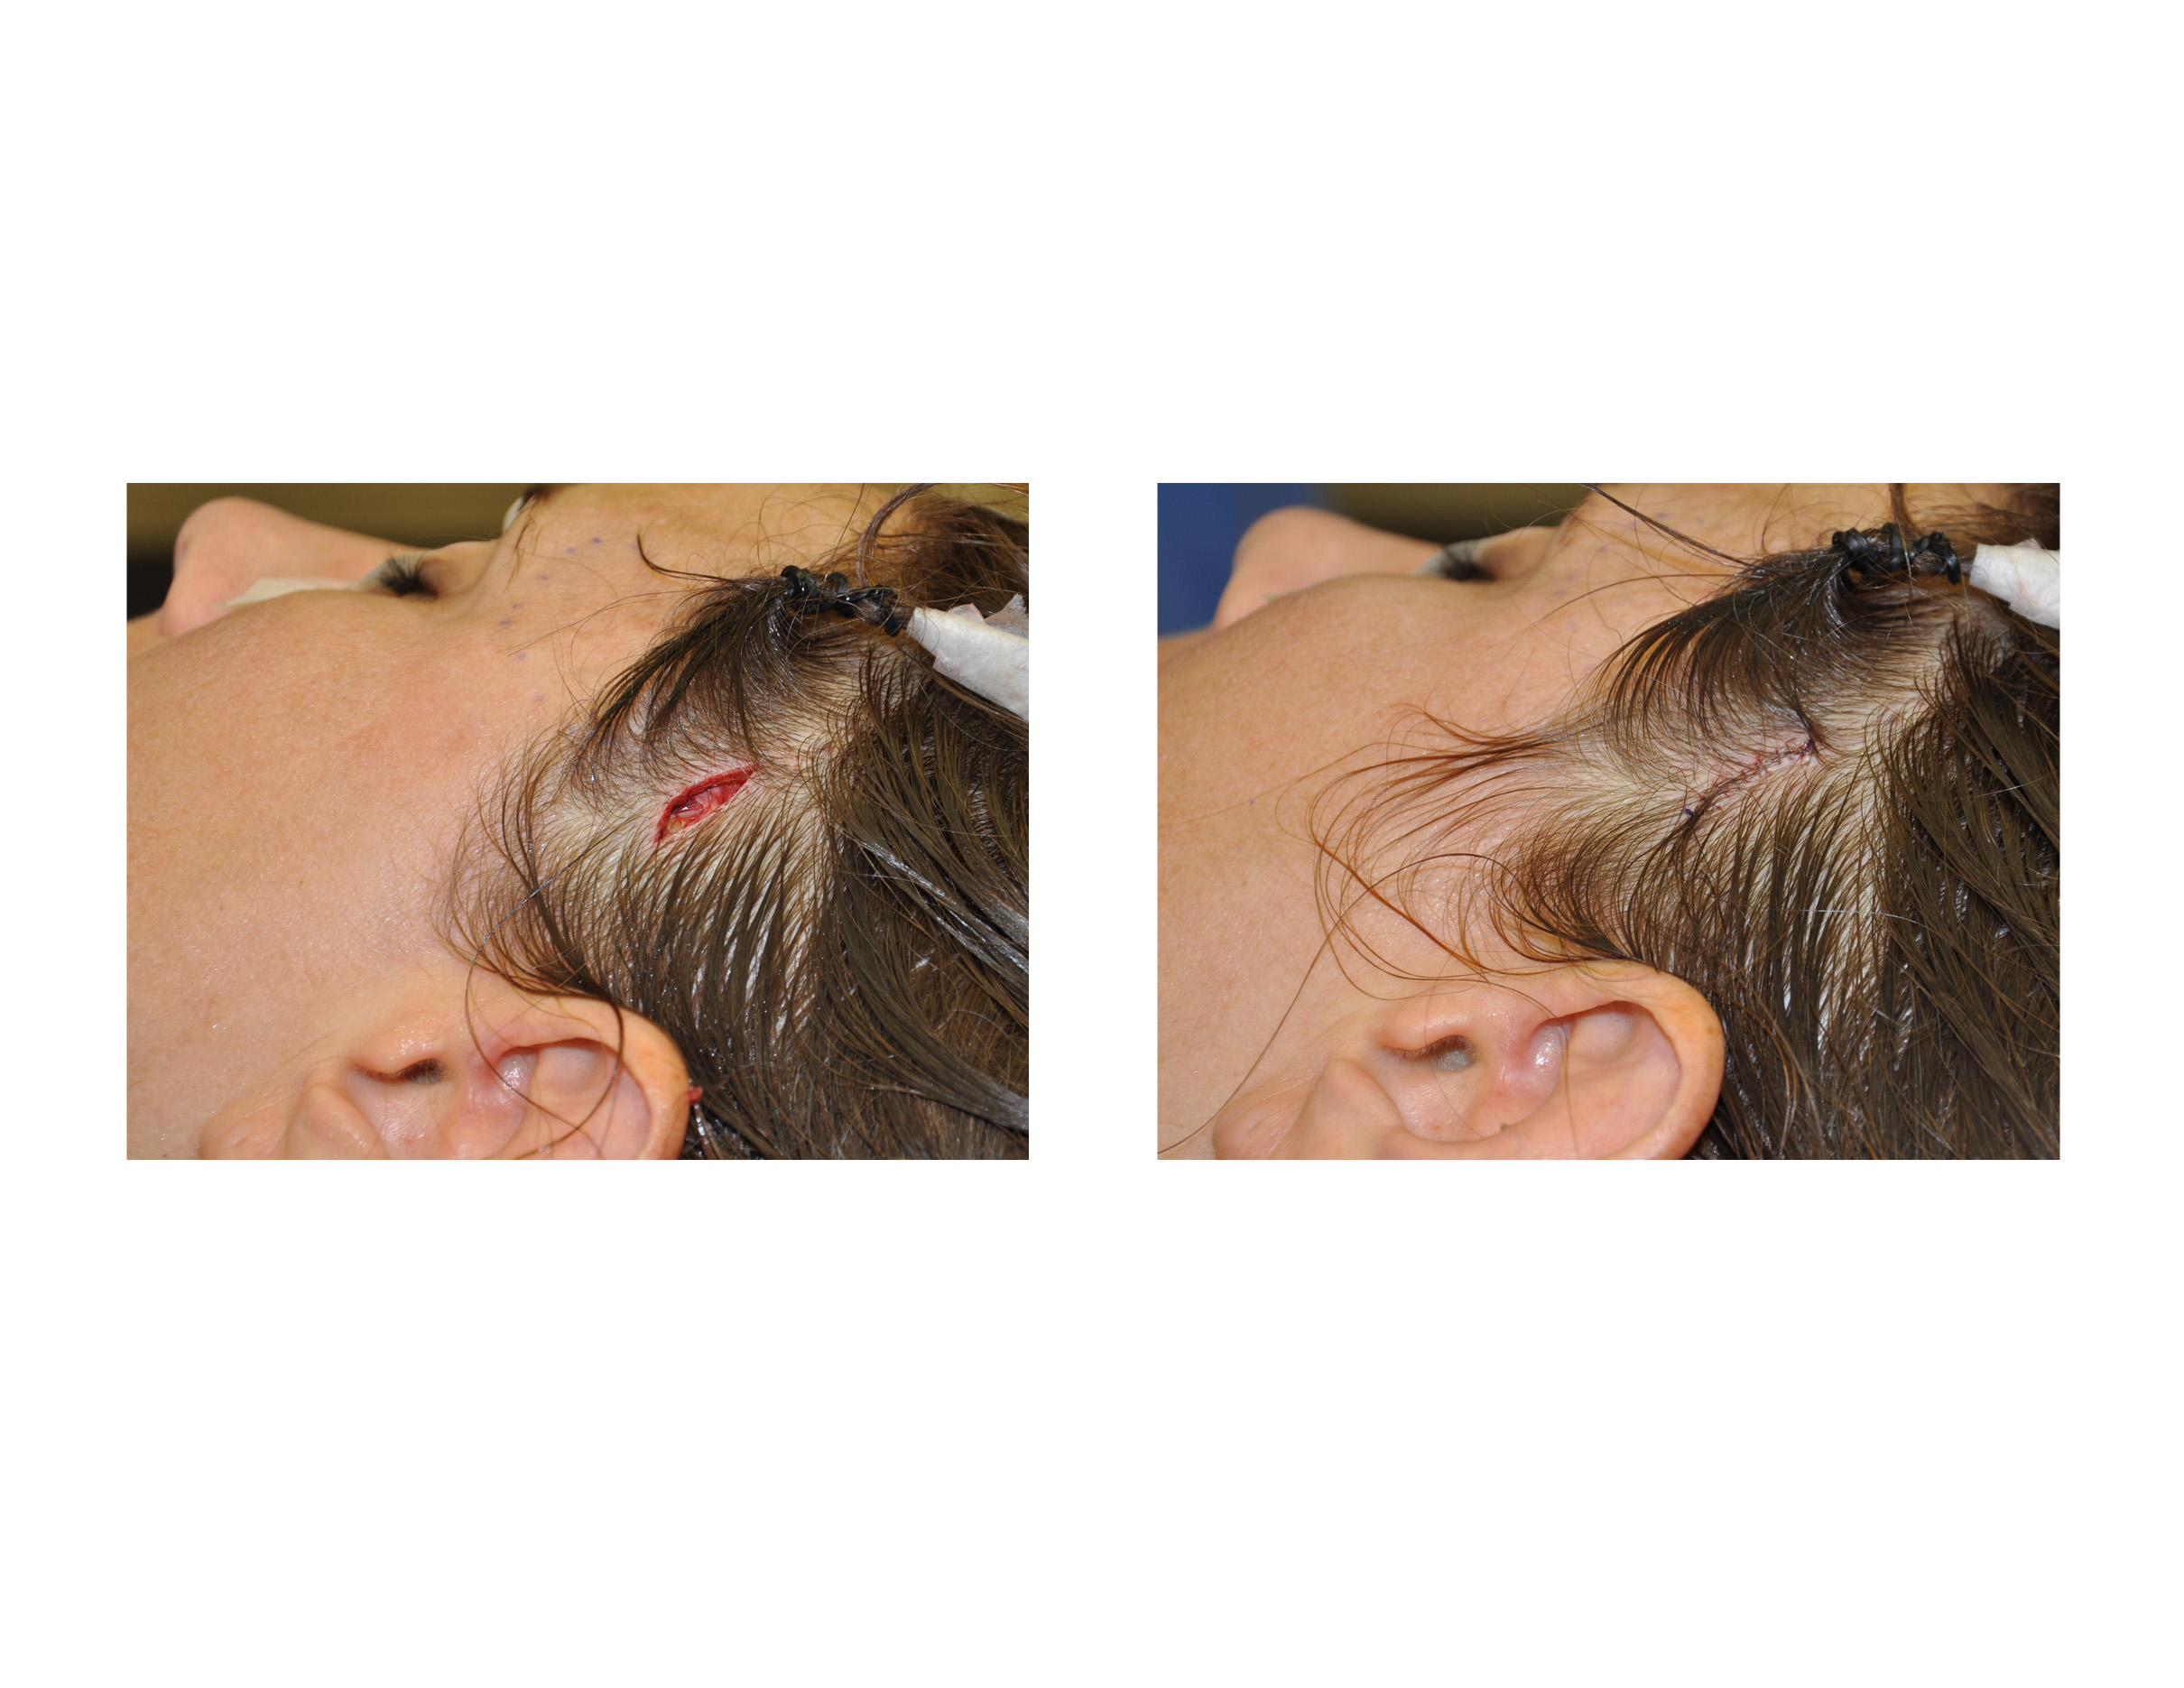 Which Surgical Procedure Uses Cold Incision And Closure For Minimally Invasive Temporal Augmentation